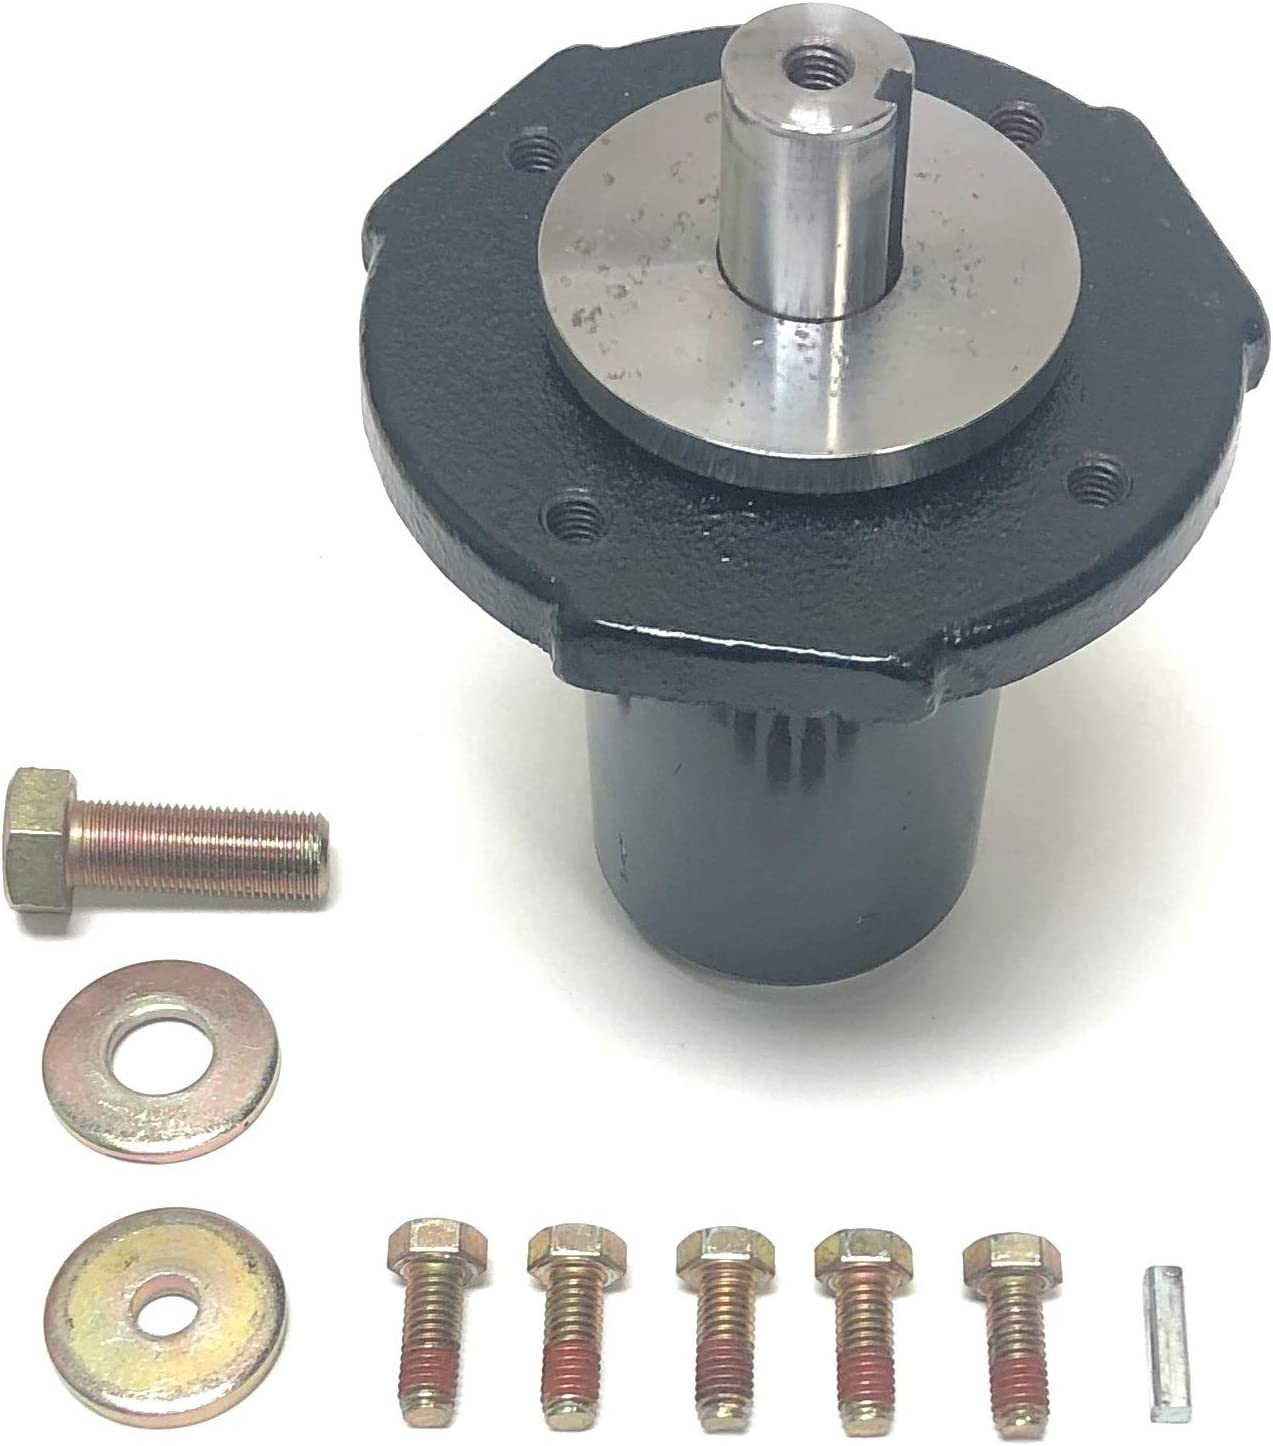 Raisman Spindle Mandrel Assembly Compatible with Gravely or Ariens 59202600/59215400 / 59225700/69219700